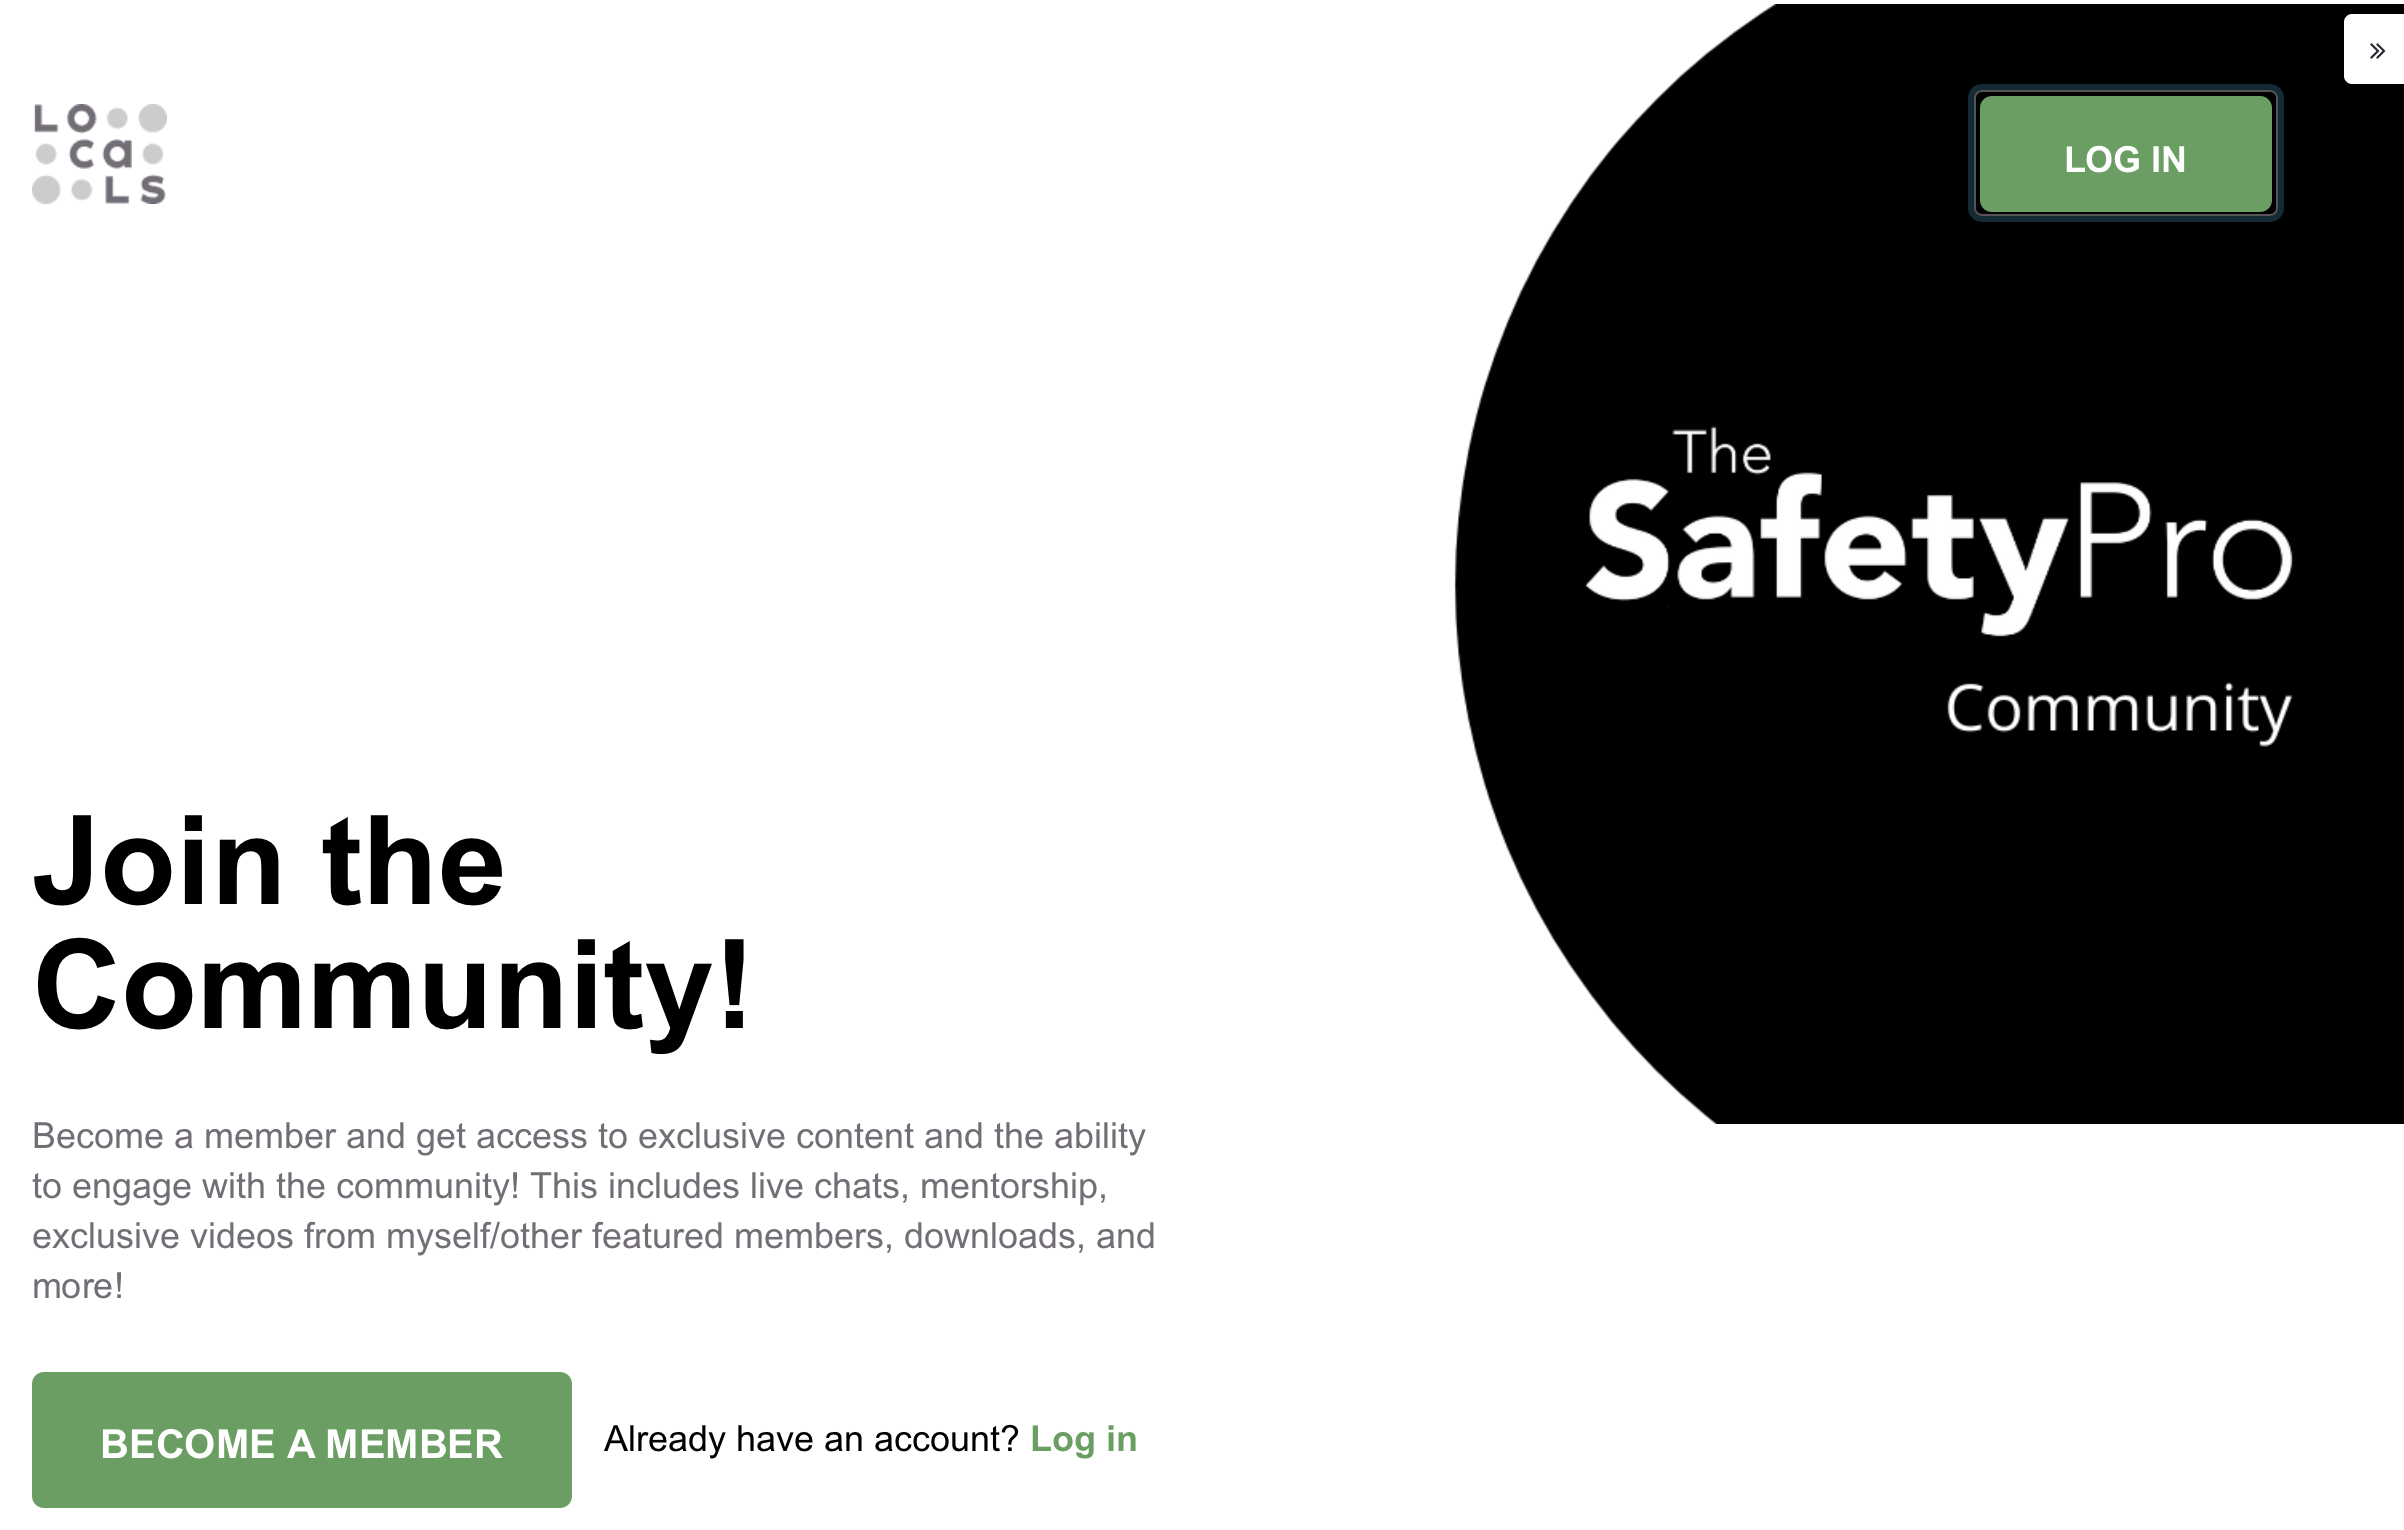 The SafetyPro Community